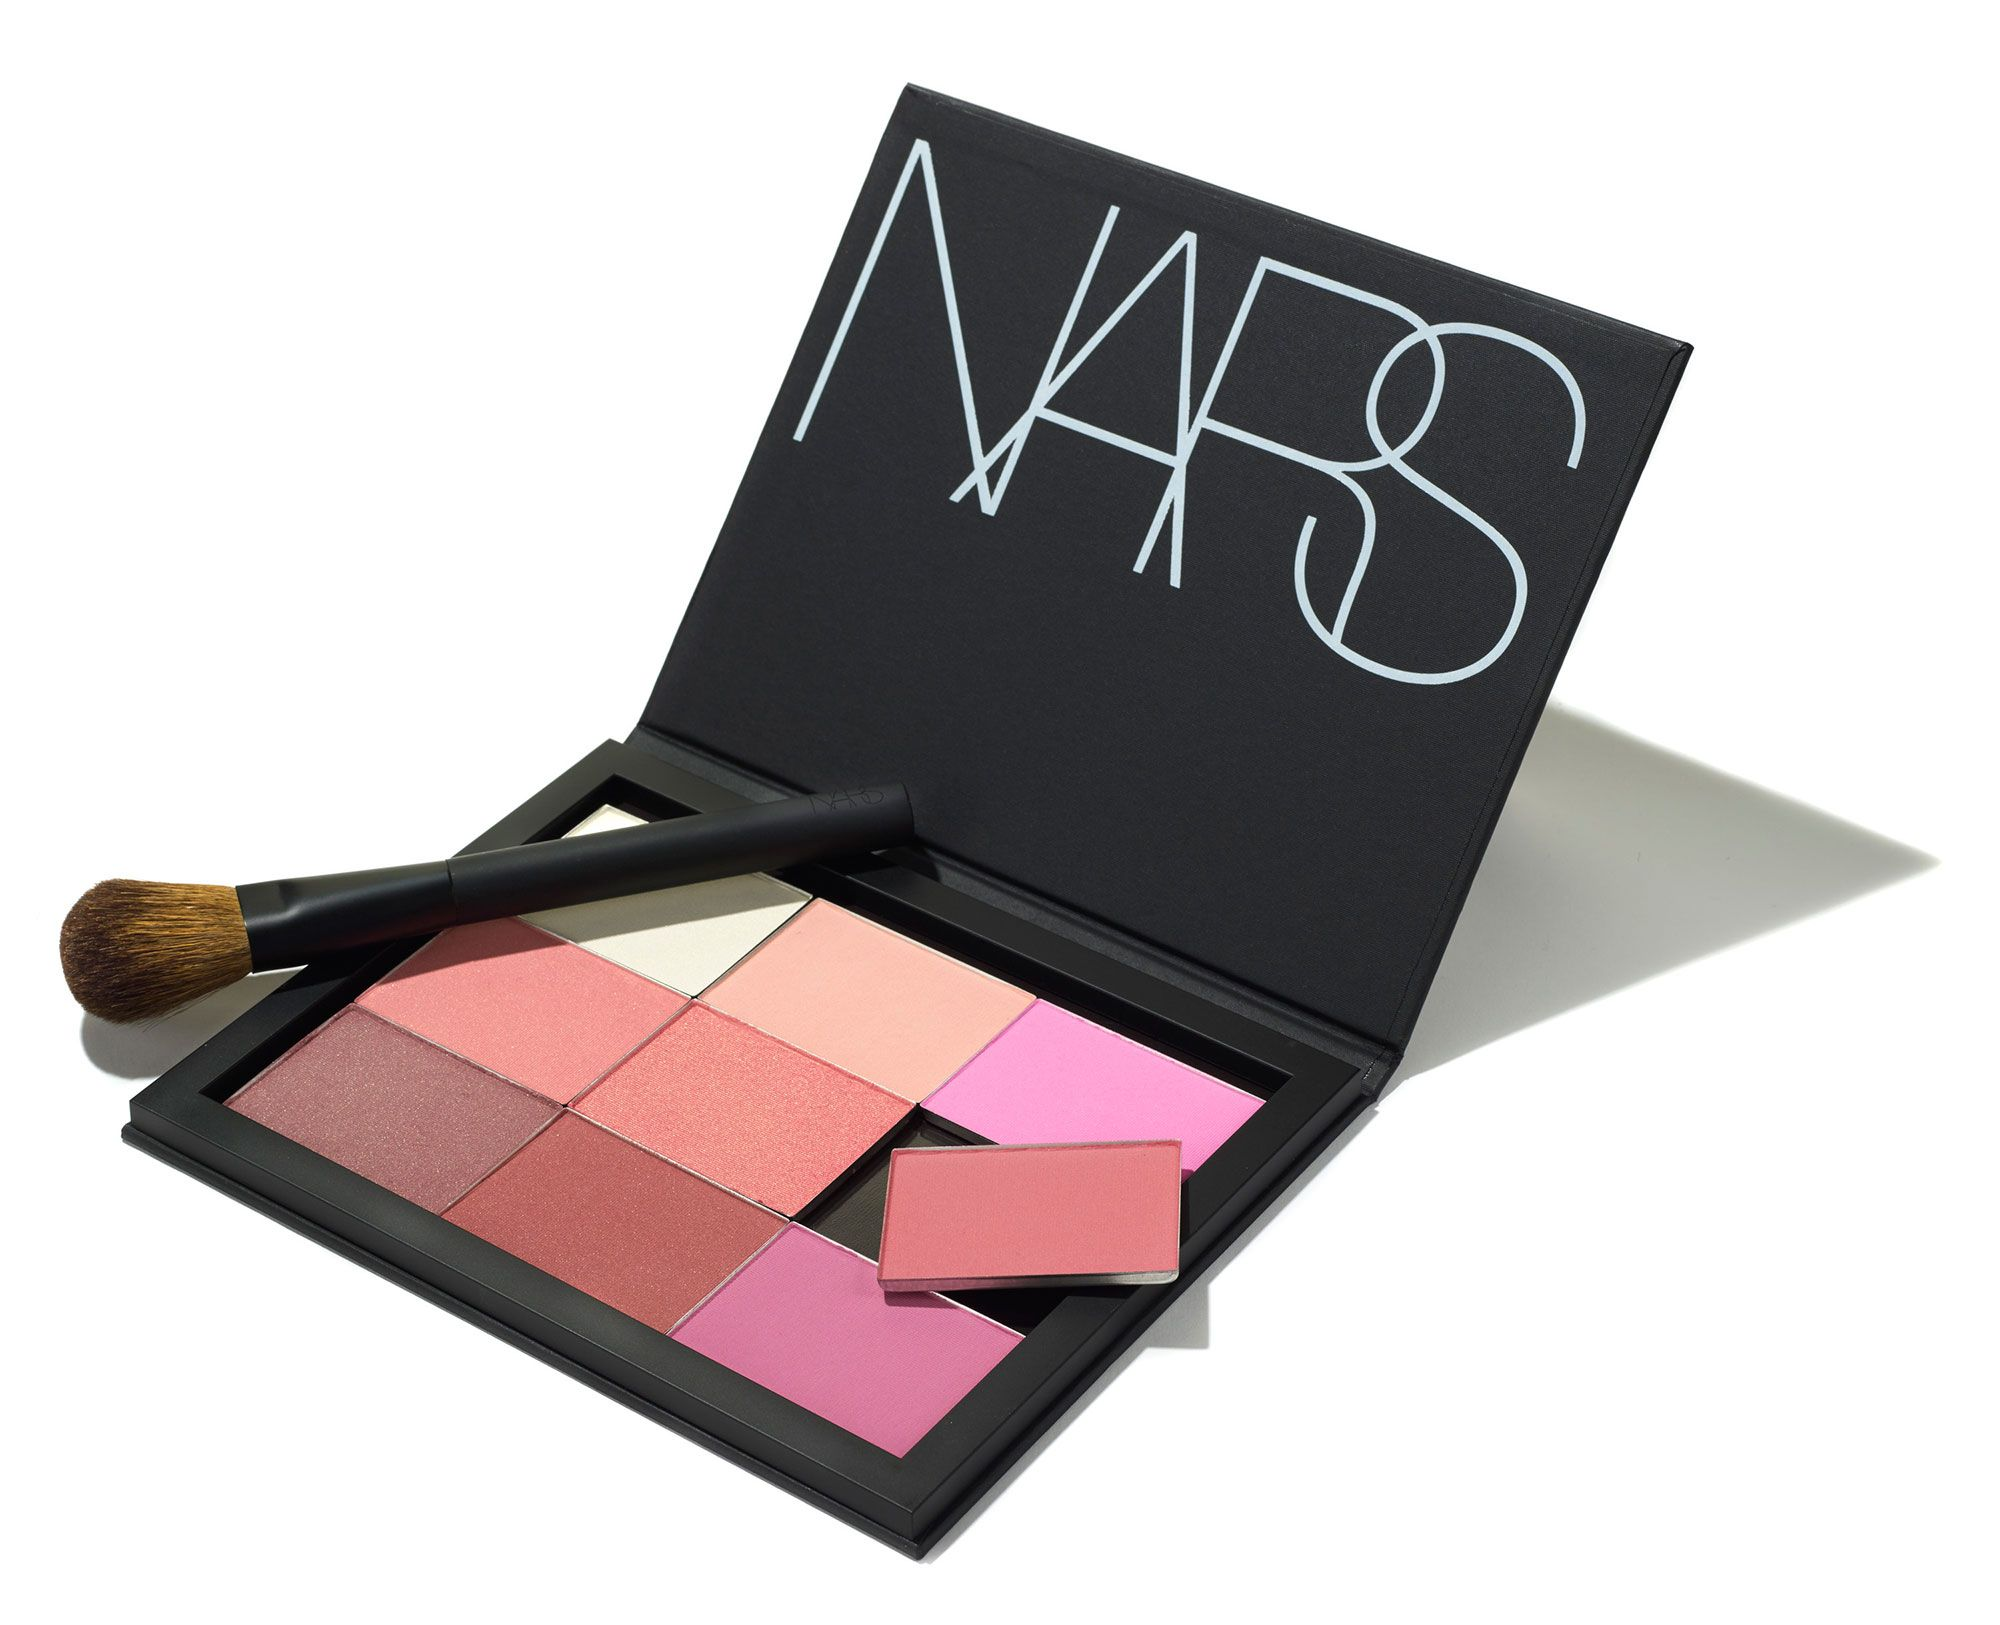 NARS just made their customizable makeup palette available to the public. Find out more on wmag.com.